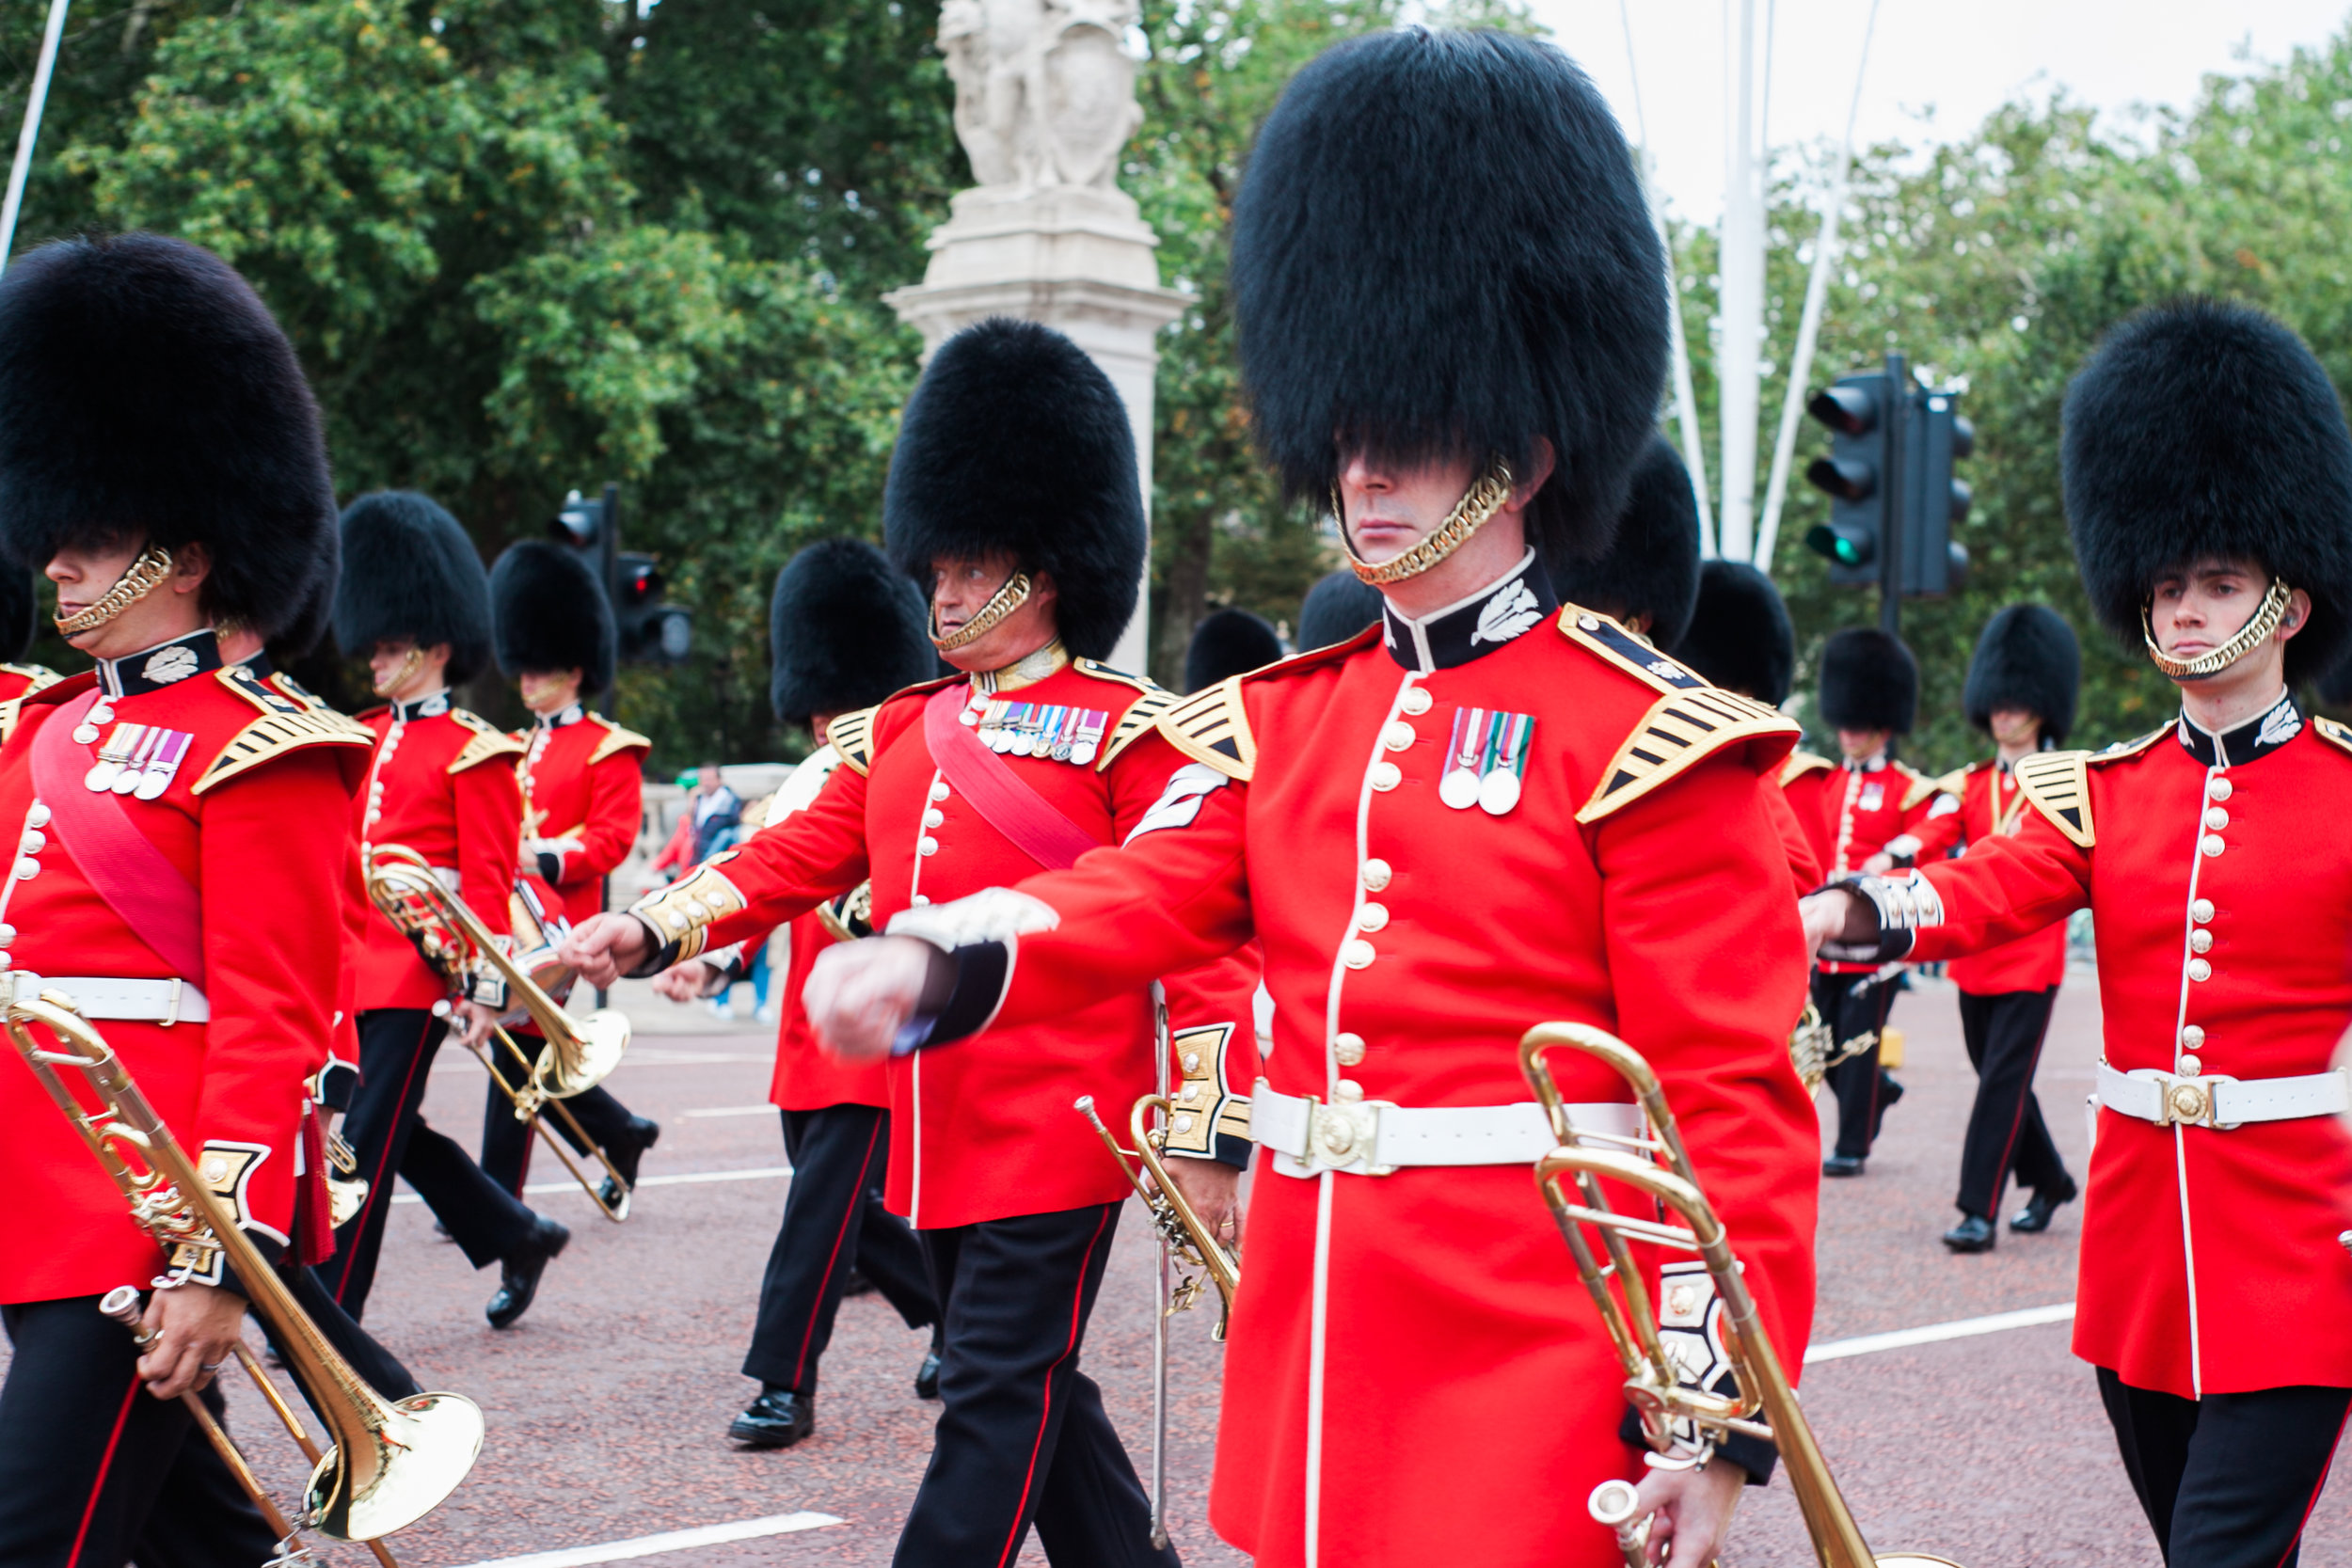 day_two_london (23 of 164).jpg